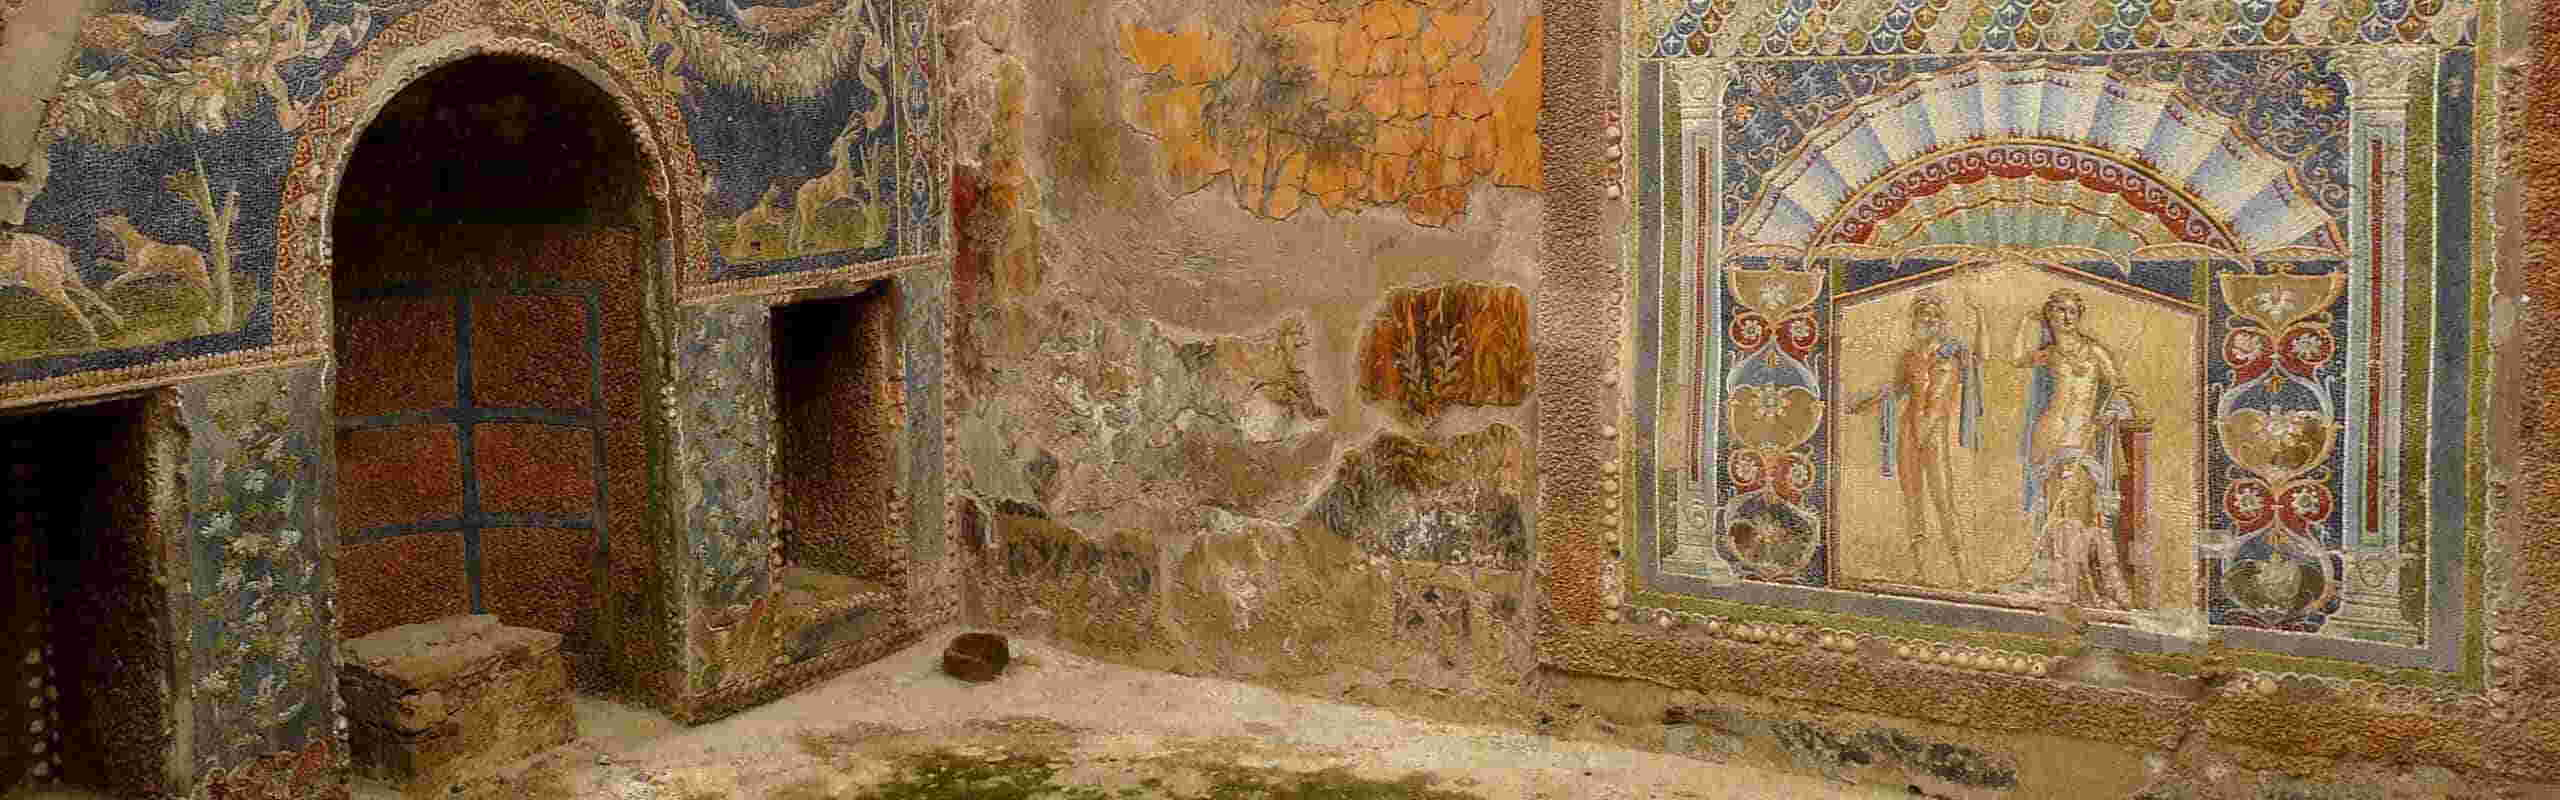 5 Unusual Facts you might not know about Pompeii